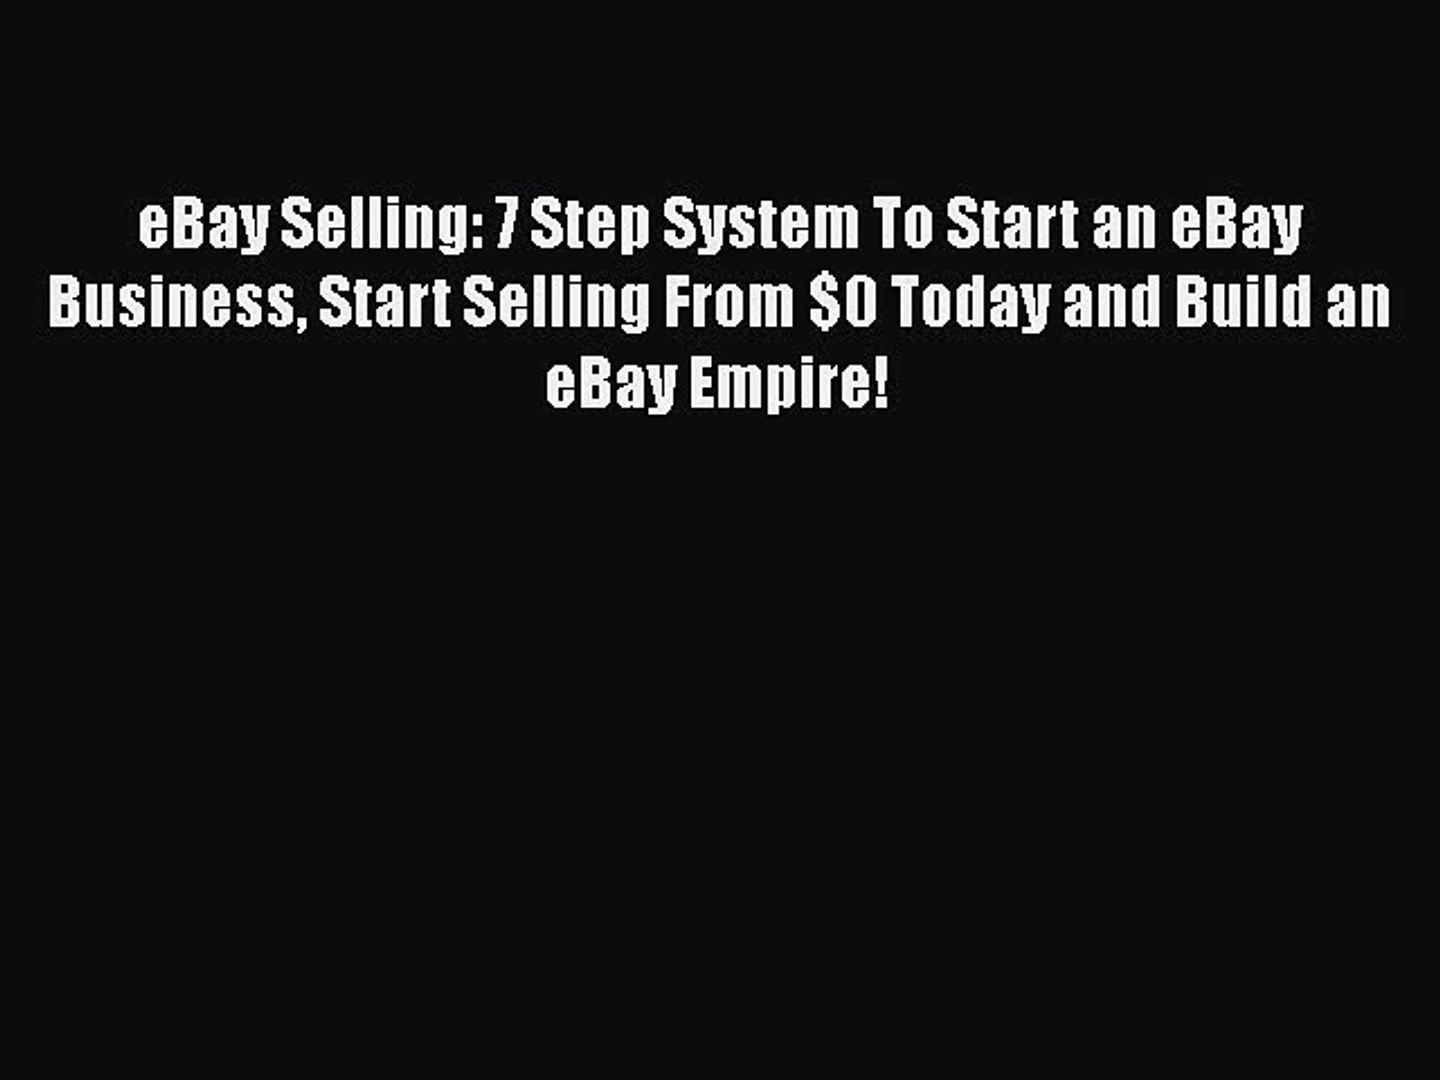 Read Book Ebay Selling 7 Step System To Start An Ebay Business Start Selling From 0 Today Video Dailymotion